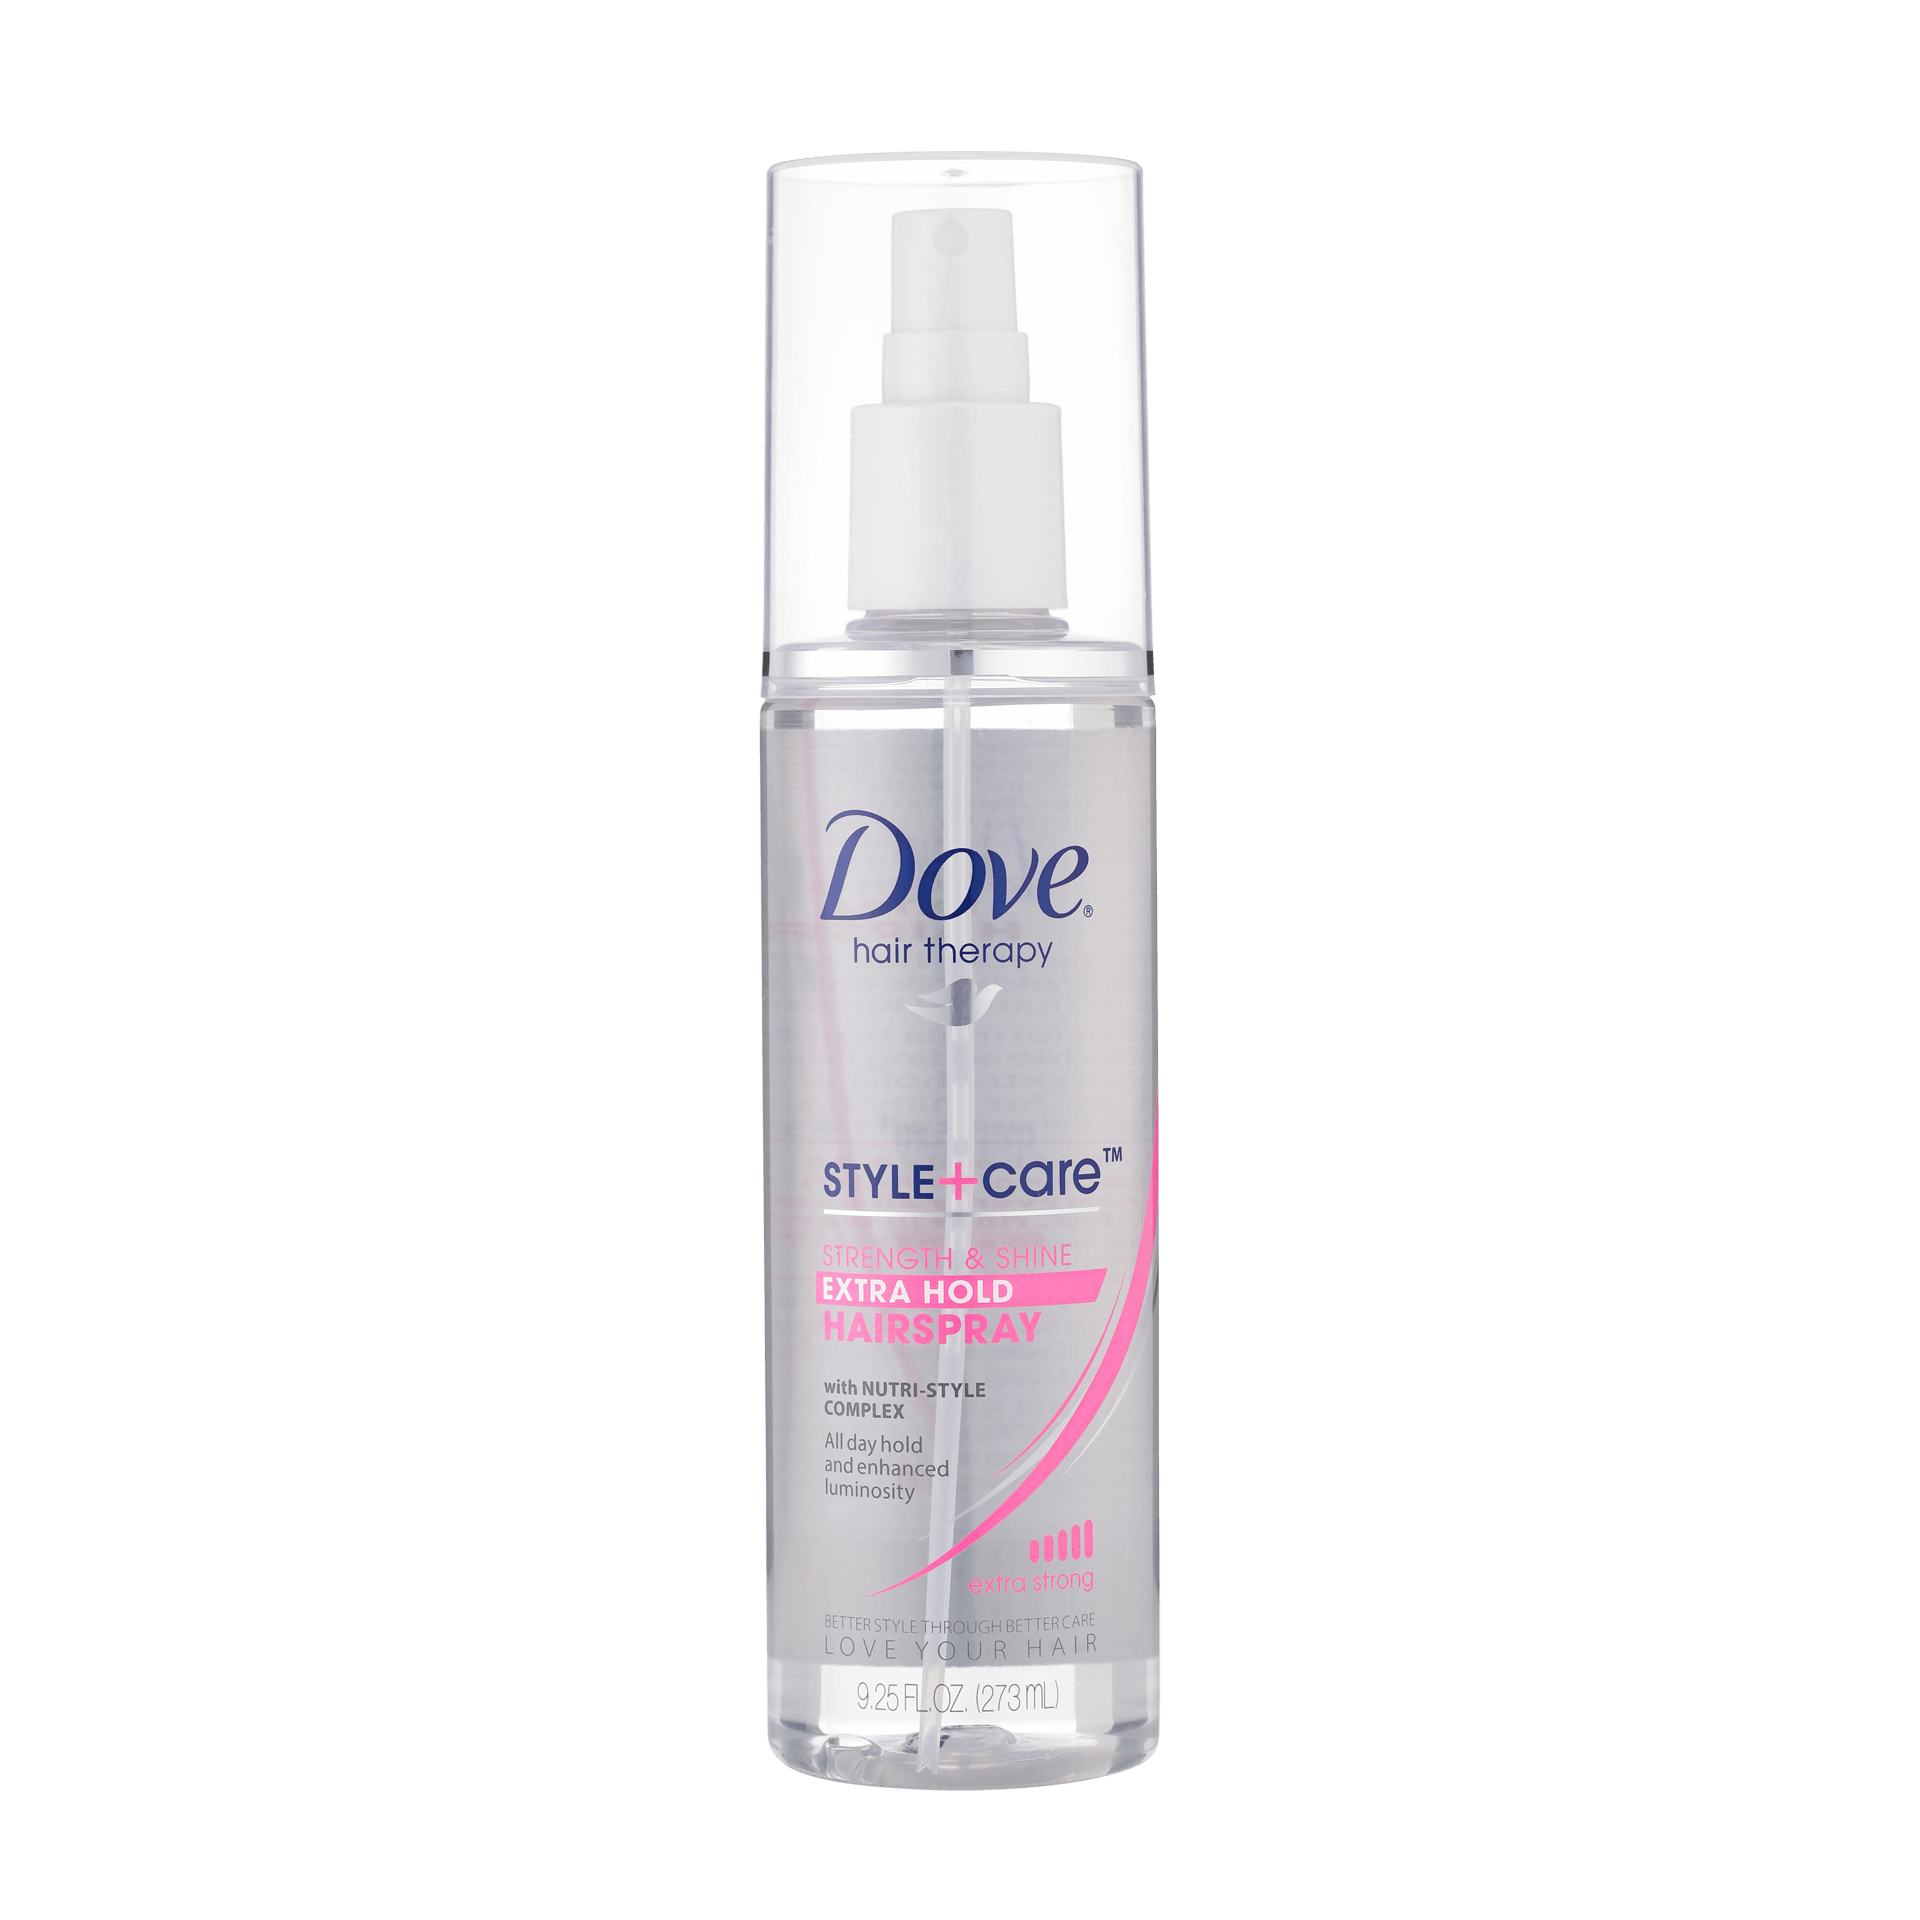 dove hair therapy style care dove style care hold non aerosol hairspray 7908